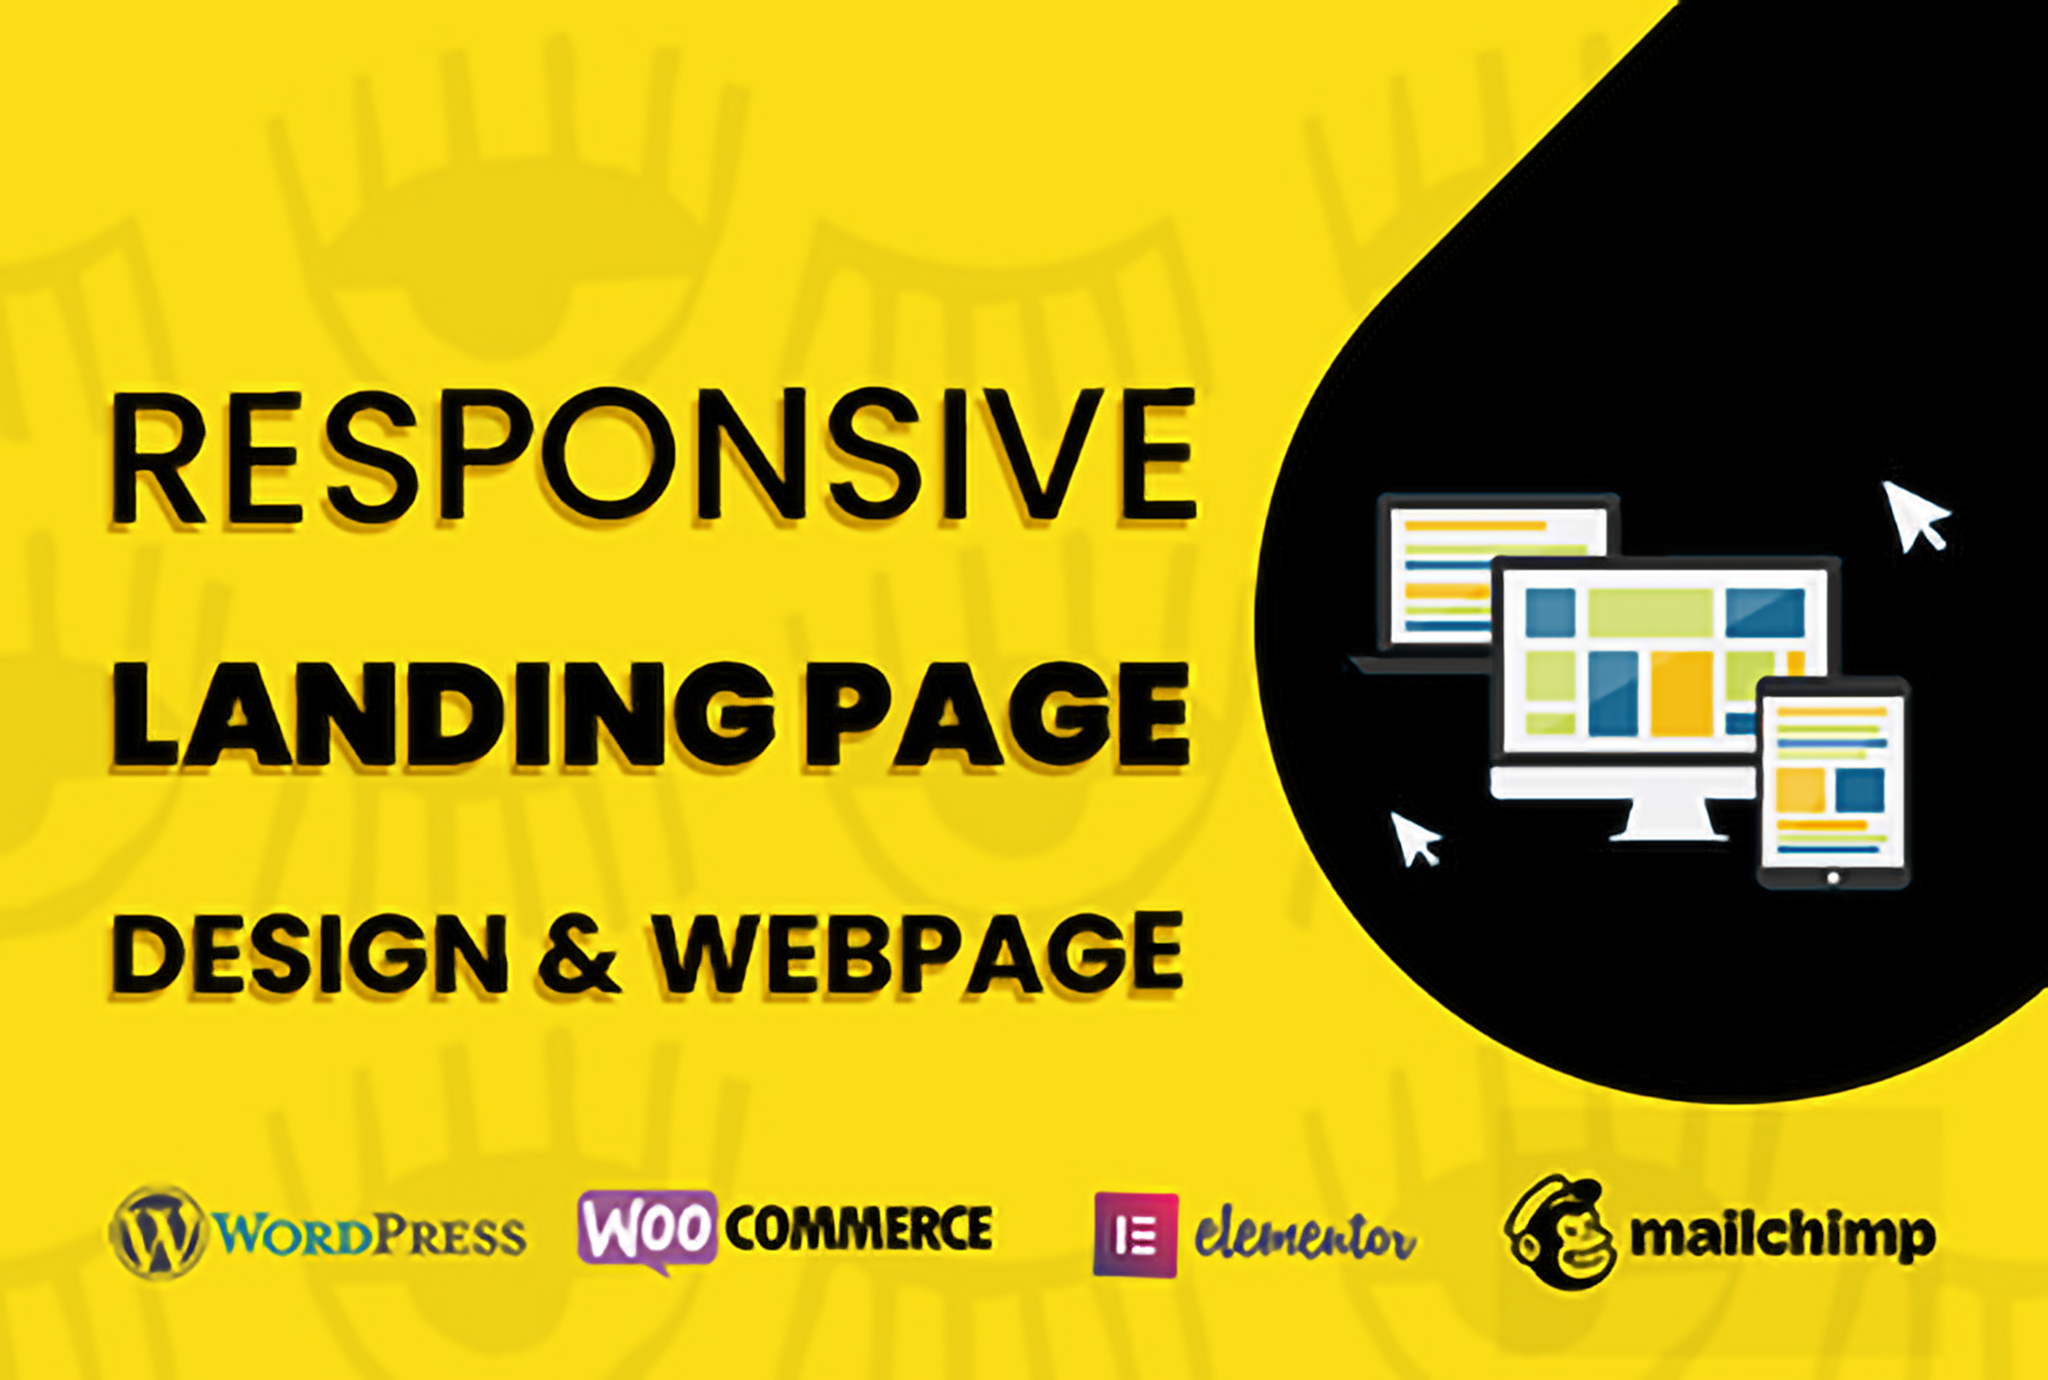 Design a modern webpage and wordpress landing page